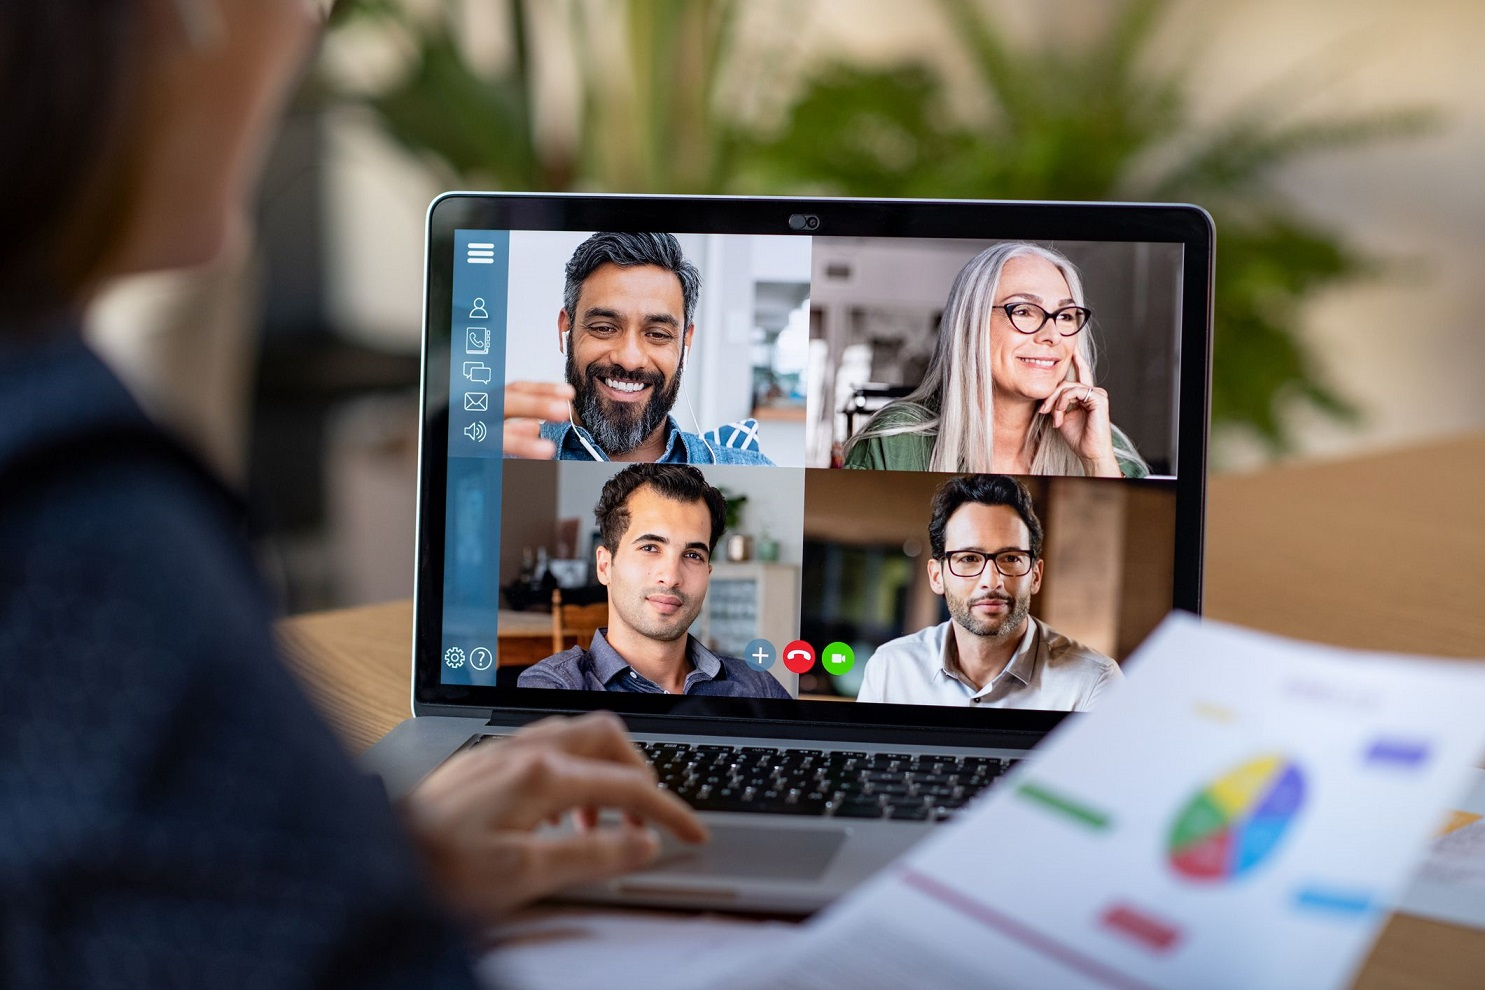 remote working and video conferencing